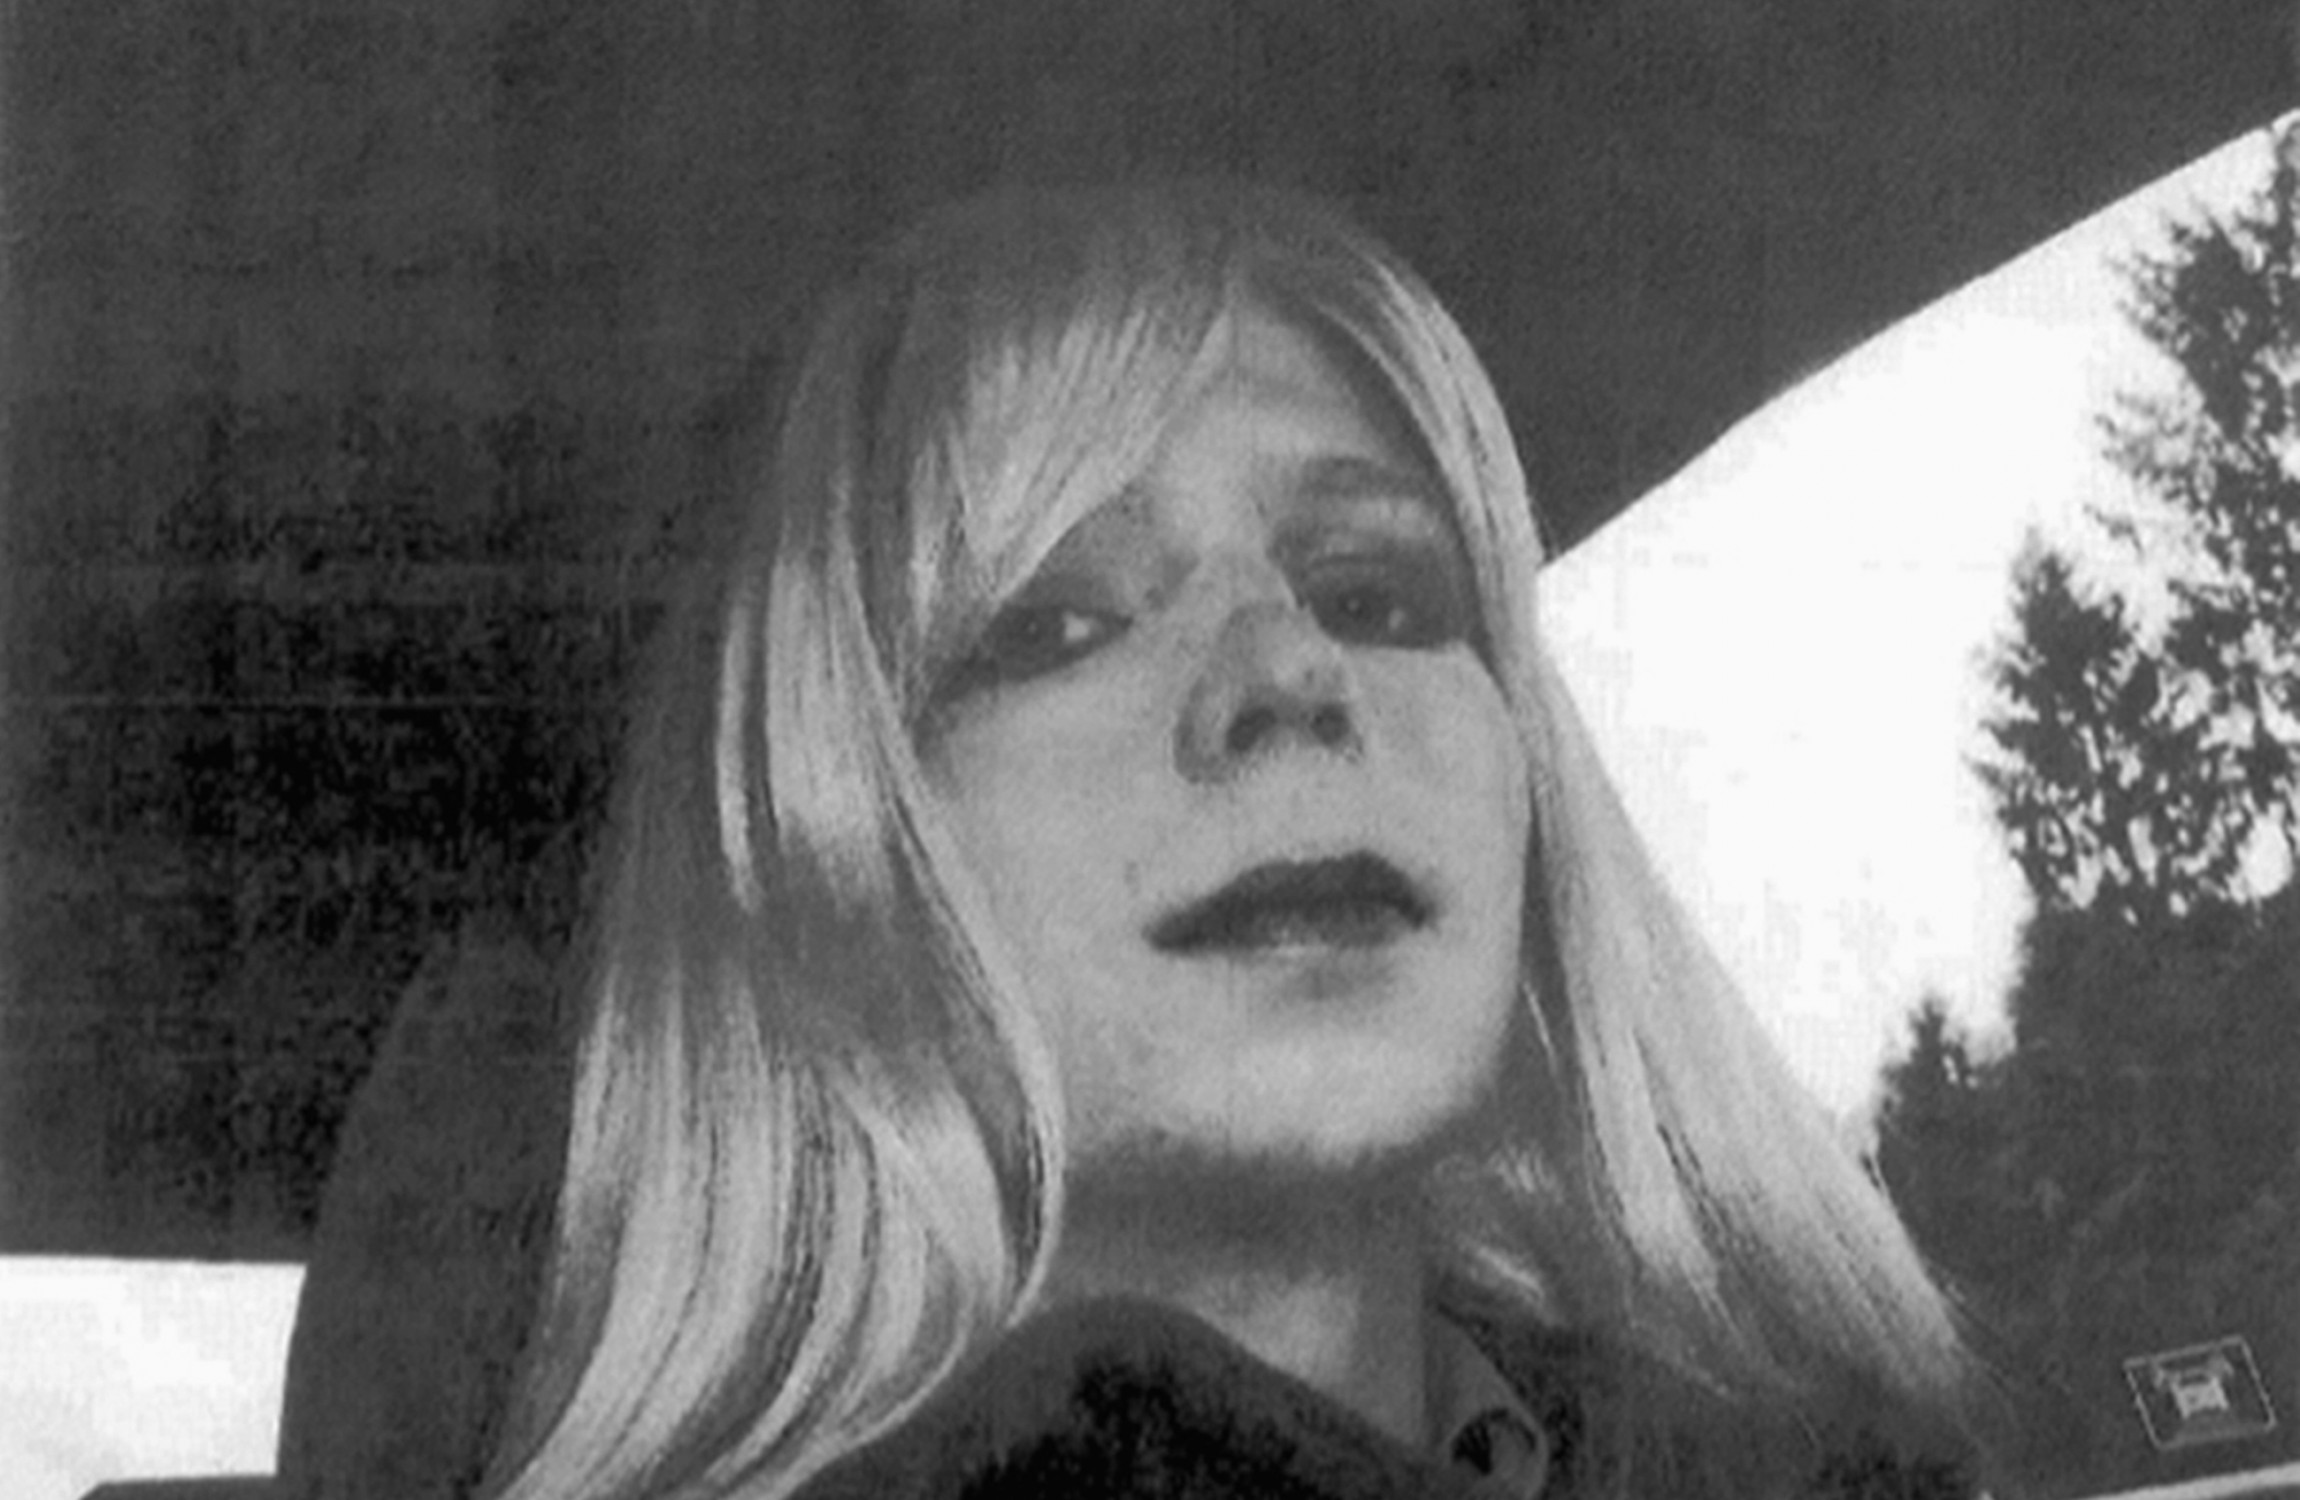 Chelsea Manning: Wikileaks source freed from military prison